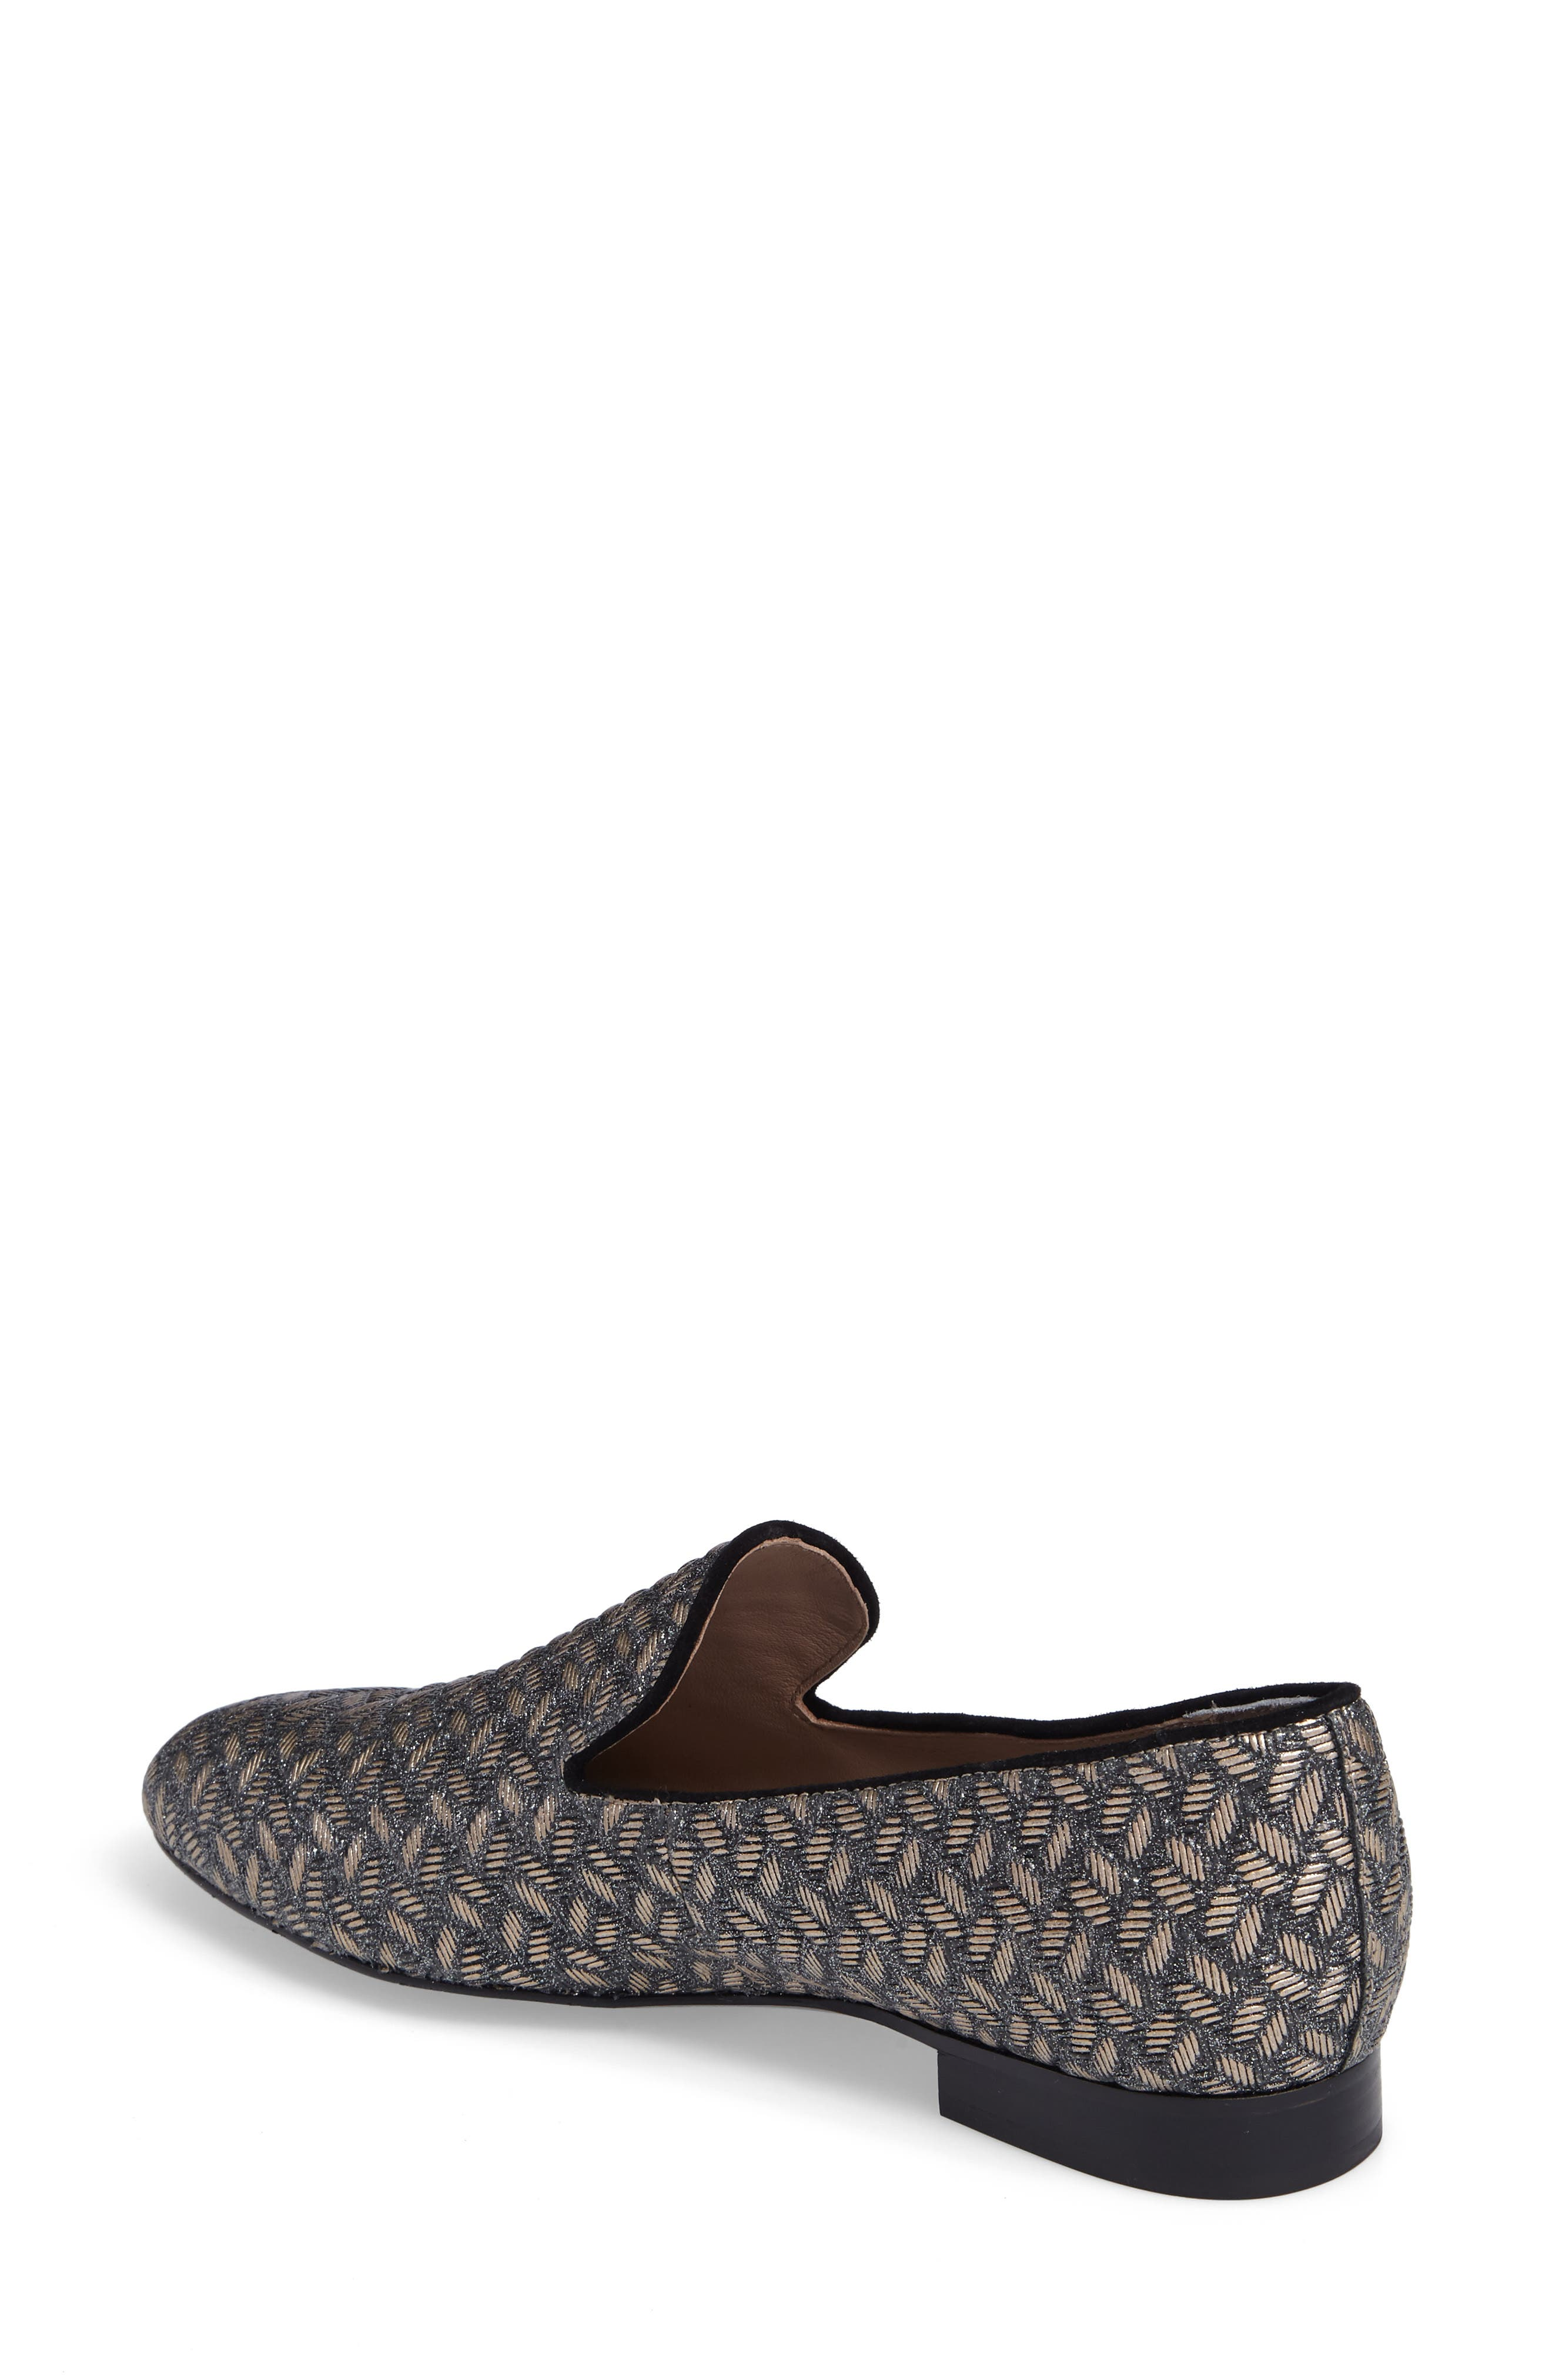 Lyle Loafer,                             Alternate thumbnail 6, color,